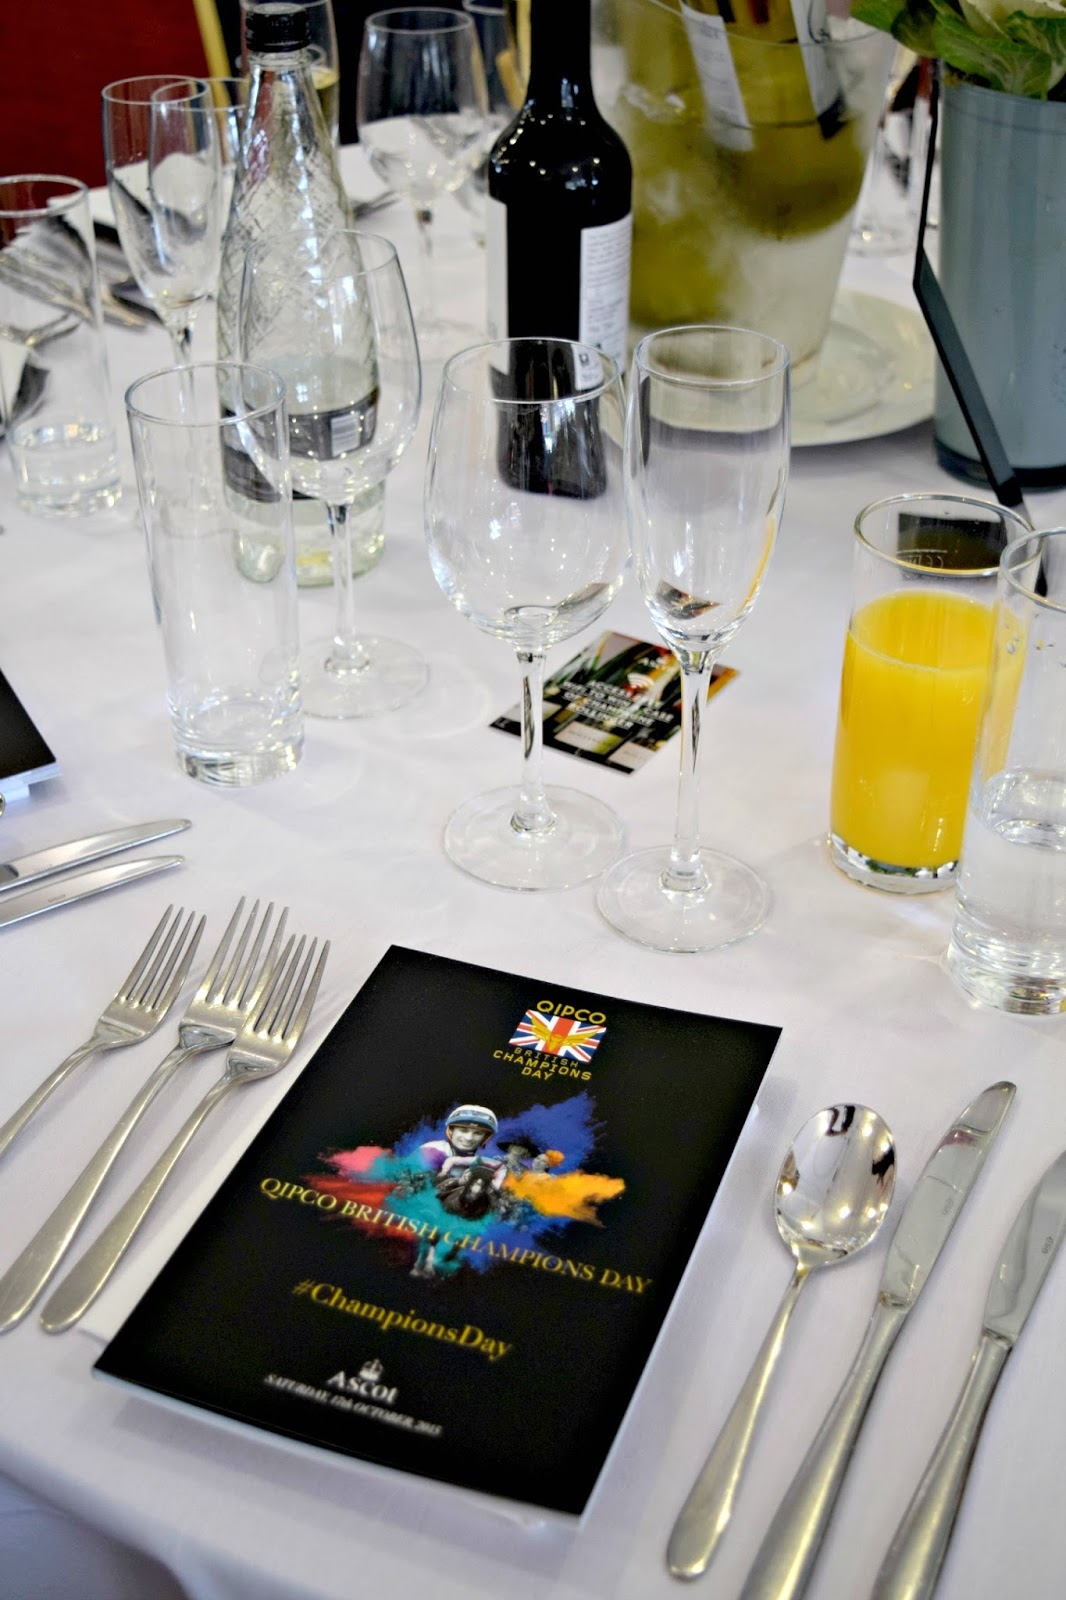 Table at Ascot Champions Day